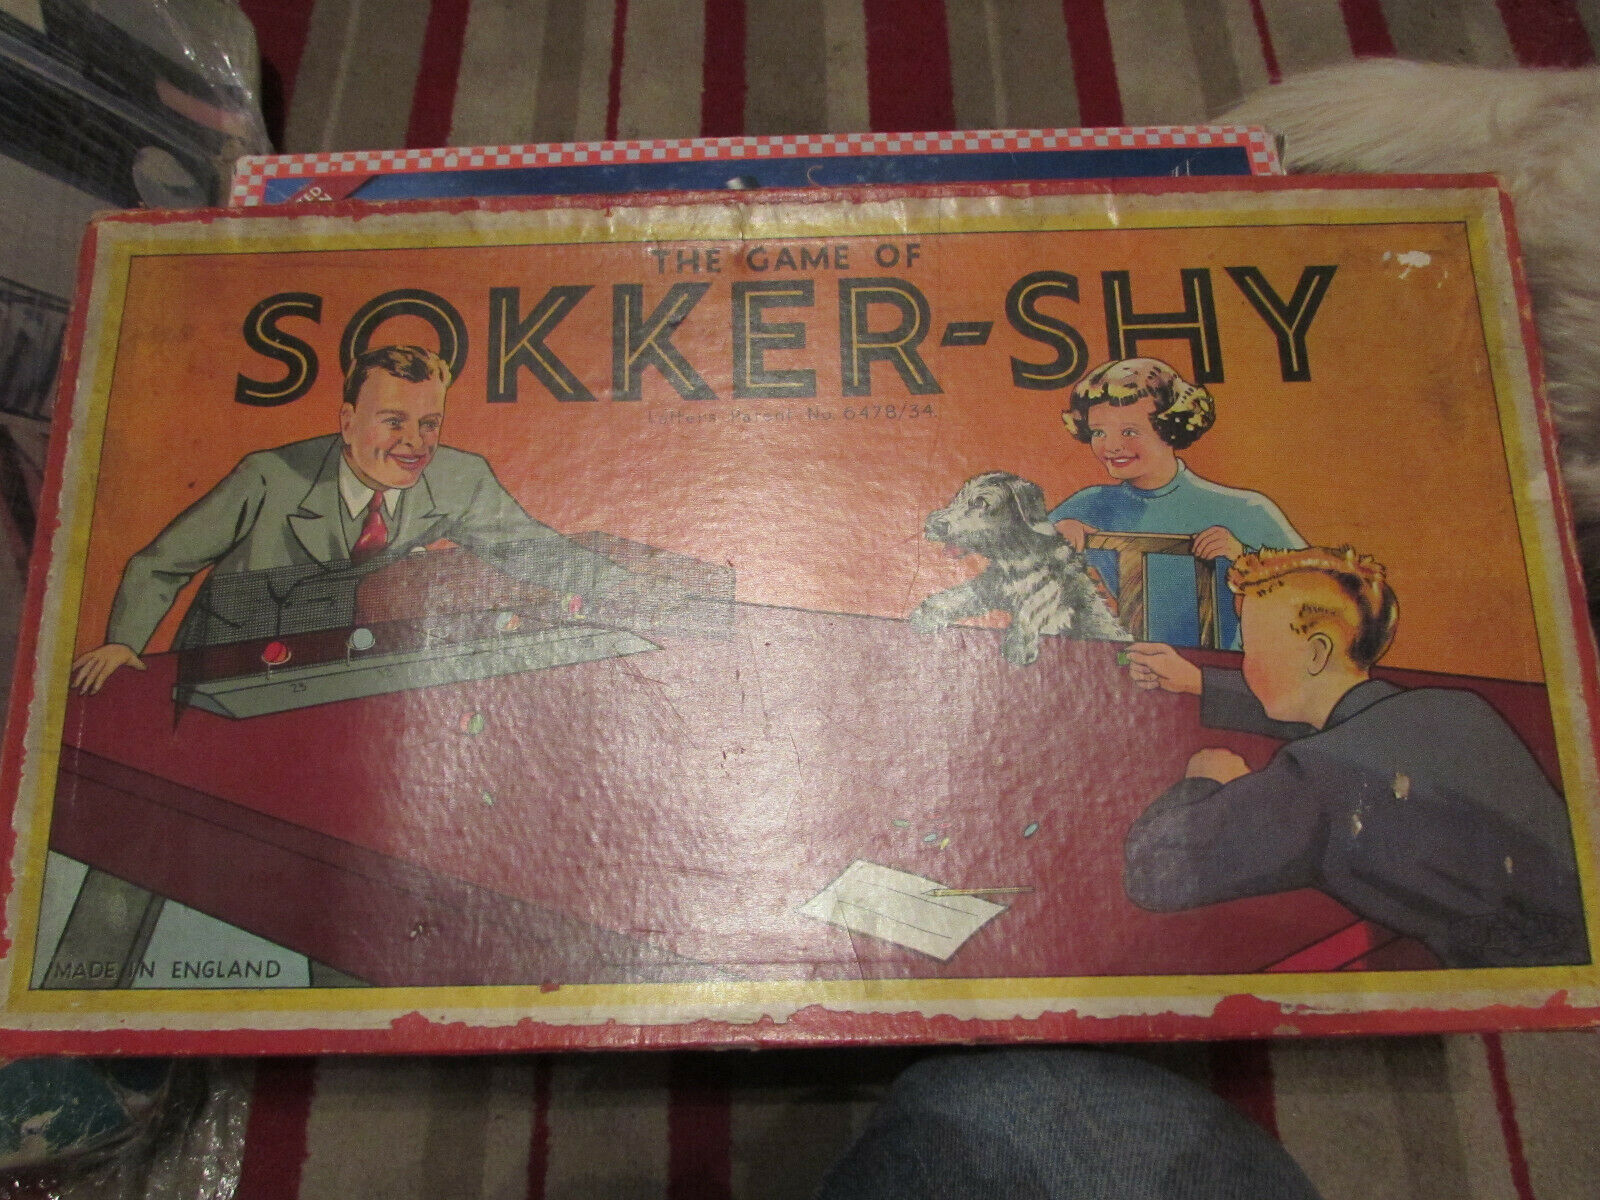 VERY RARE 1930'S GLEVUM GAMES SOKKER-SHY GAME TABLE TOP COCONUT-SHY GAME